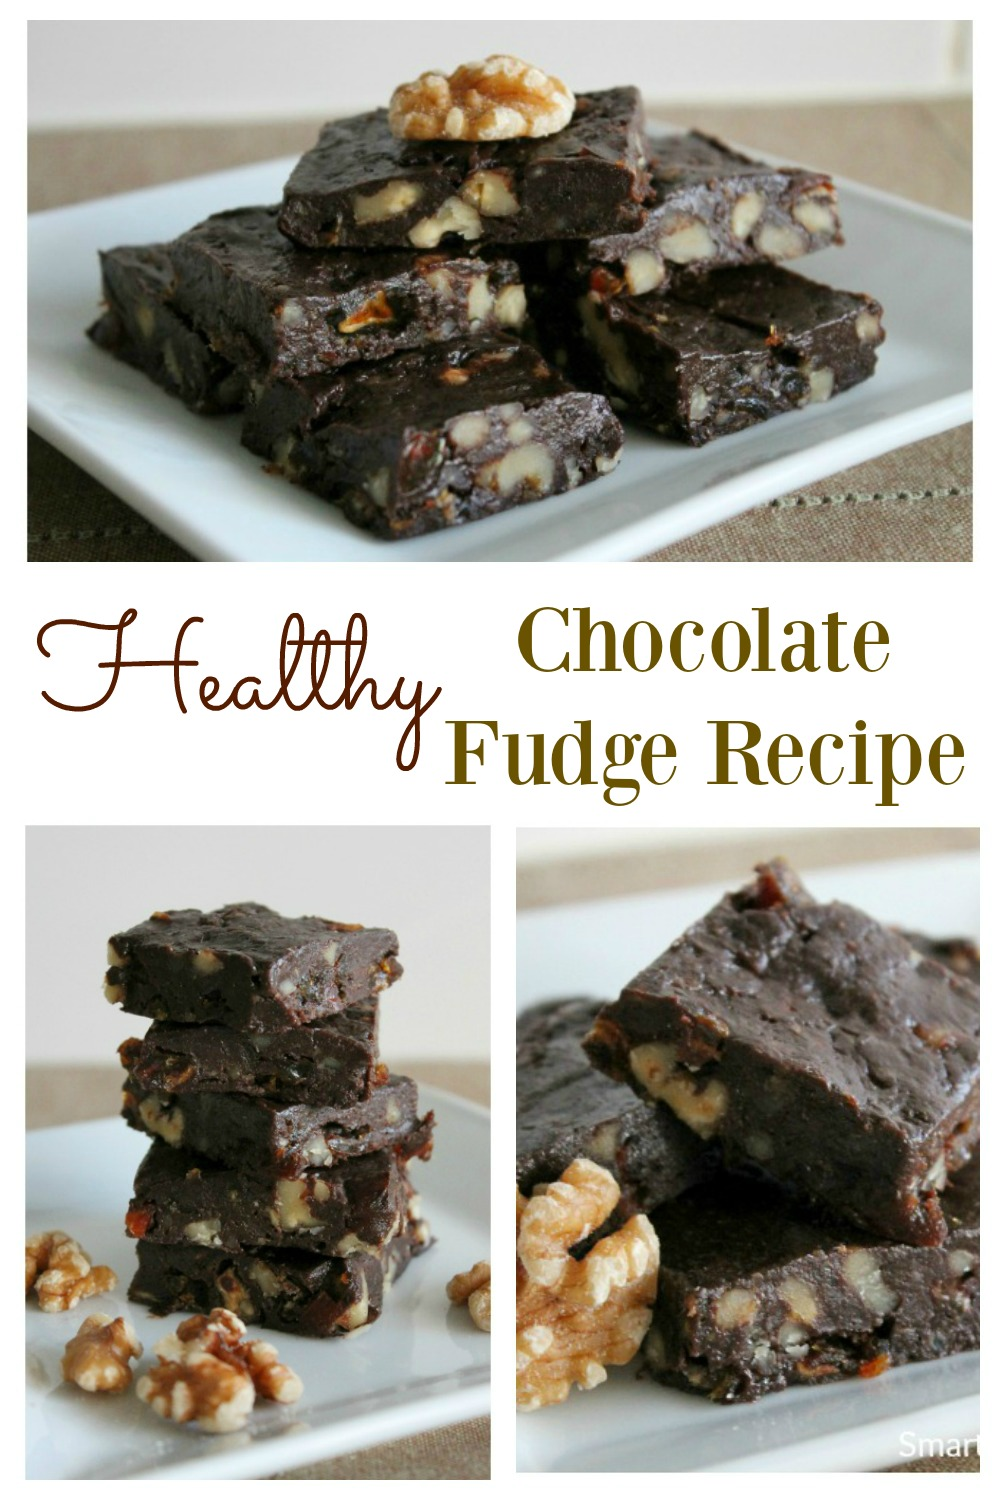 A simple healthy chocolate fudge recipe.Despite being healthy, it's rich and decadent. It's easy to make, and tastes amazing.This is the best ever chocolate fudge that you can eat guilt free.The whole family will love it, that's if you want to share with the kids! Grab this recipe now or regret it. #Chocolatefudge #Fudgerecipe #Simple #Easy #Chocolate #Healthy